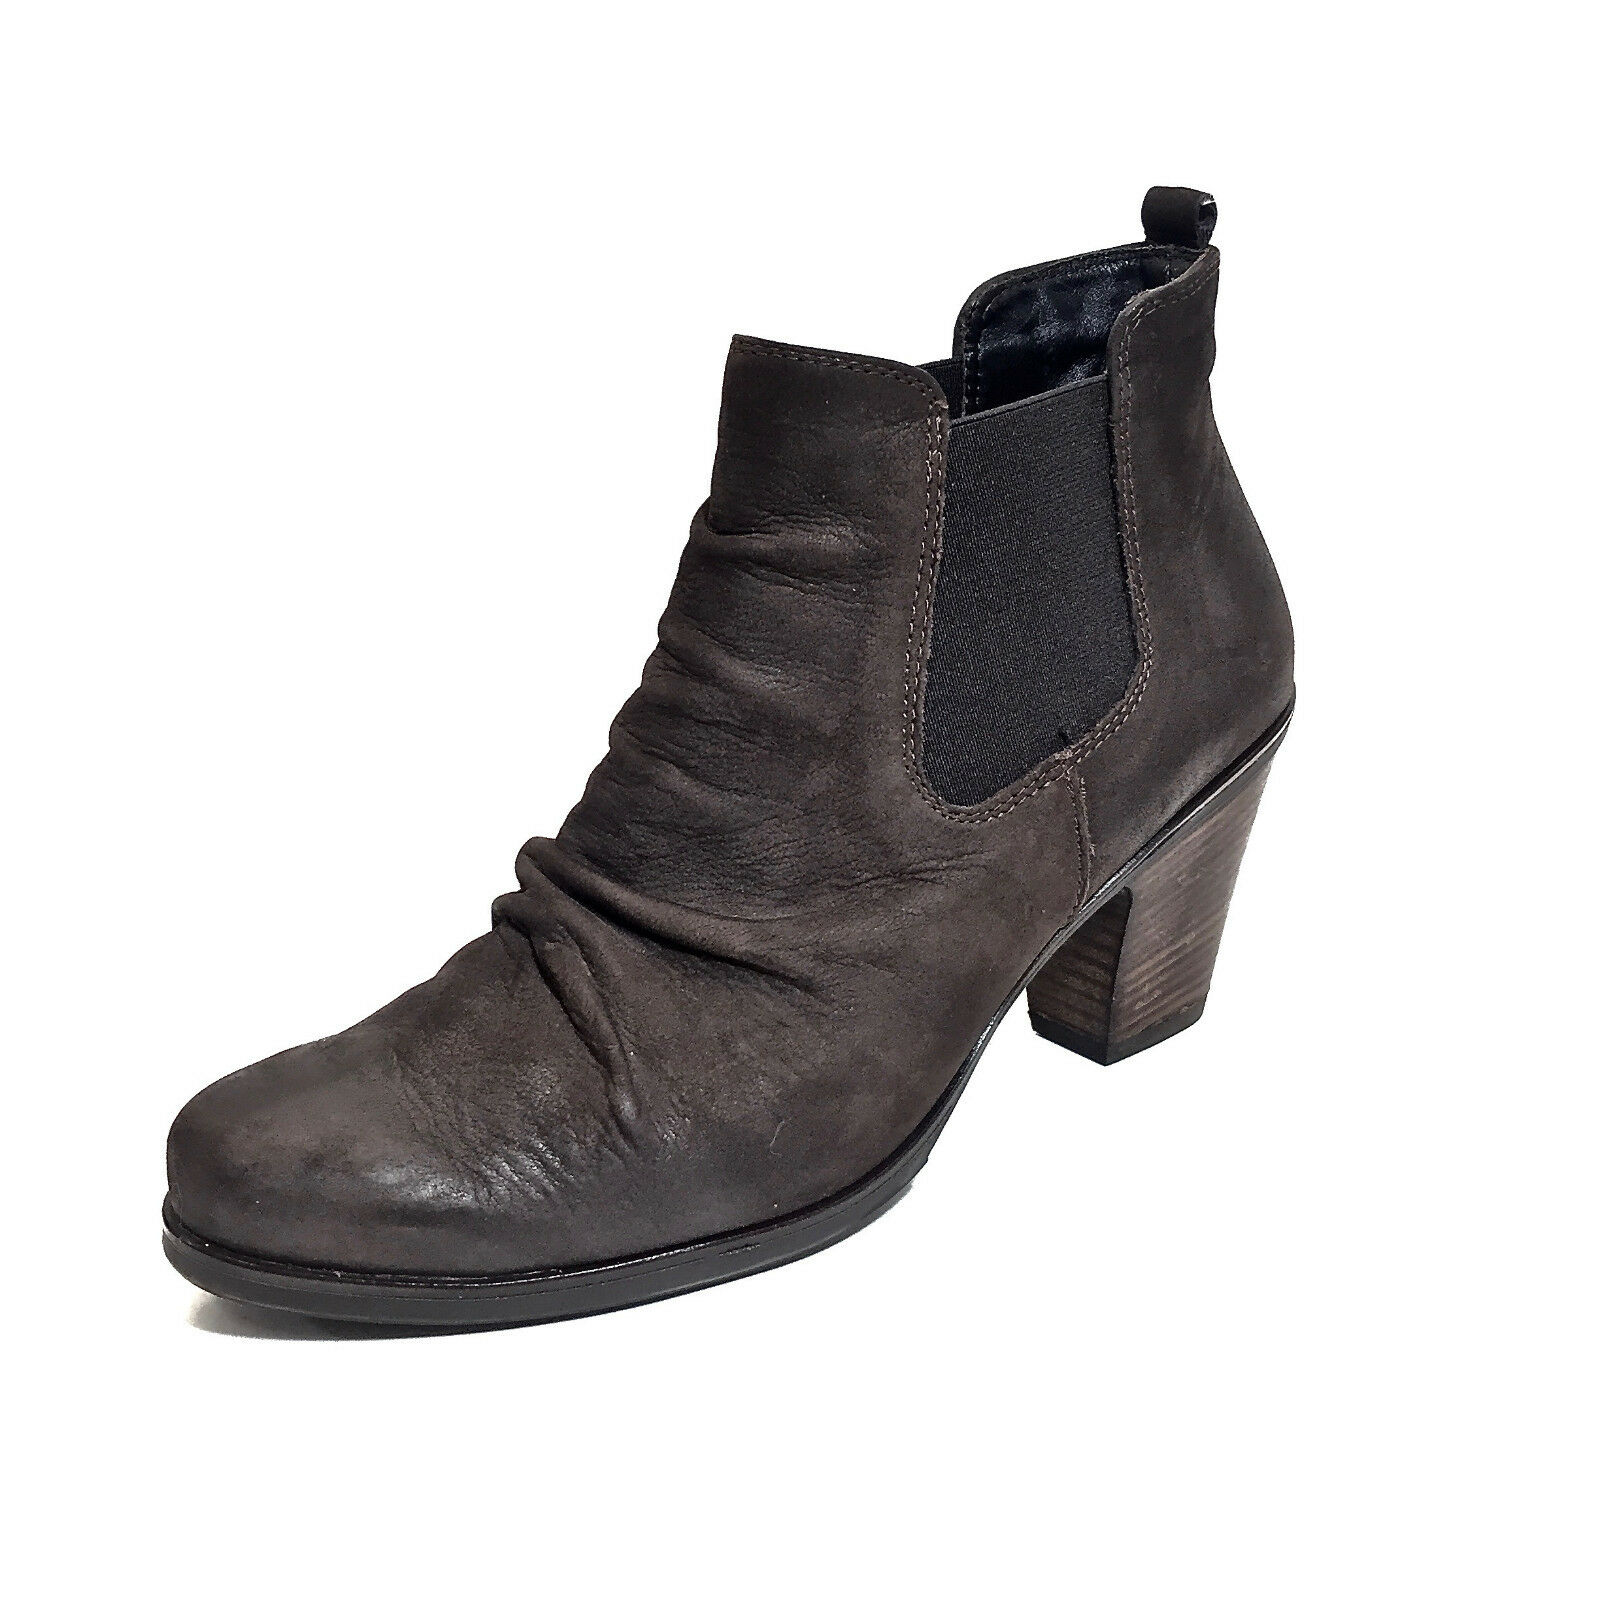 Women's Paul Green Brown Nubuck Leather Leather Leather & Elastic Ankle Boots Size 8.5 581720